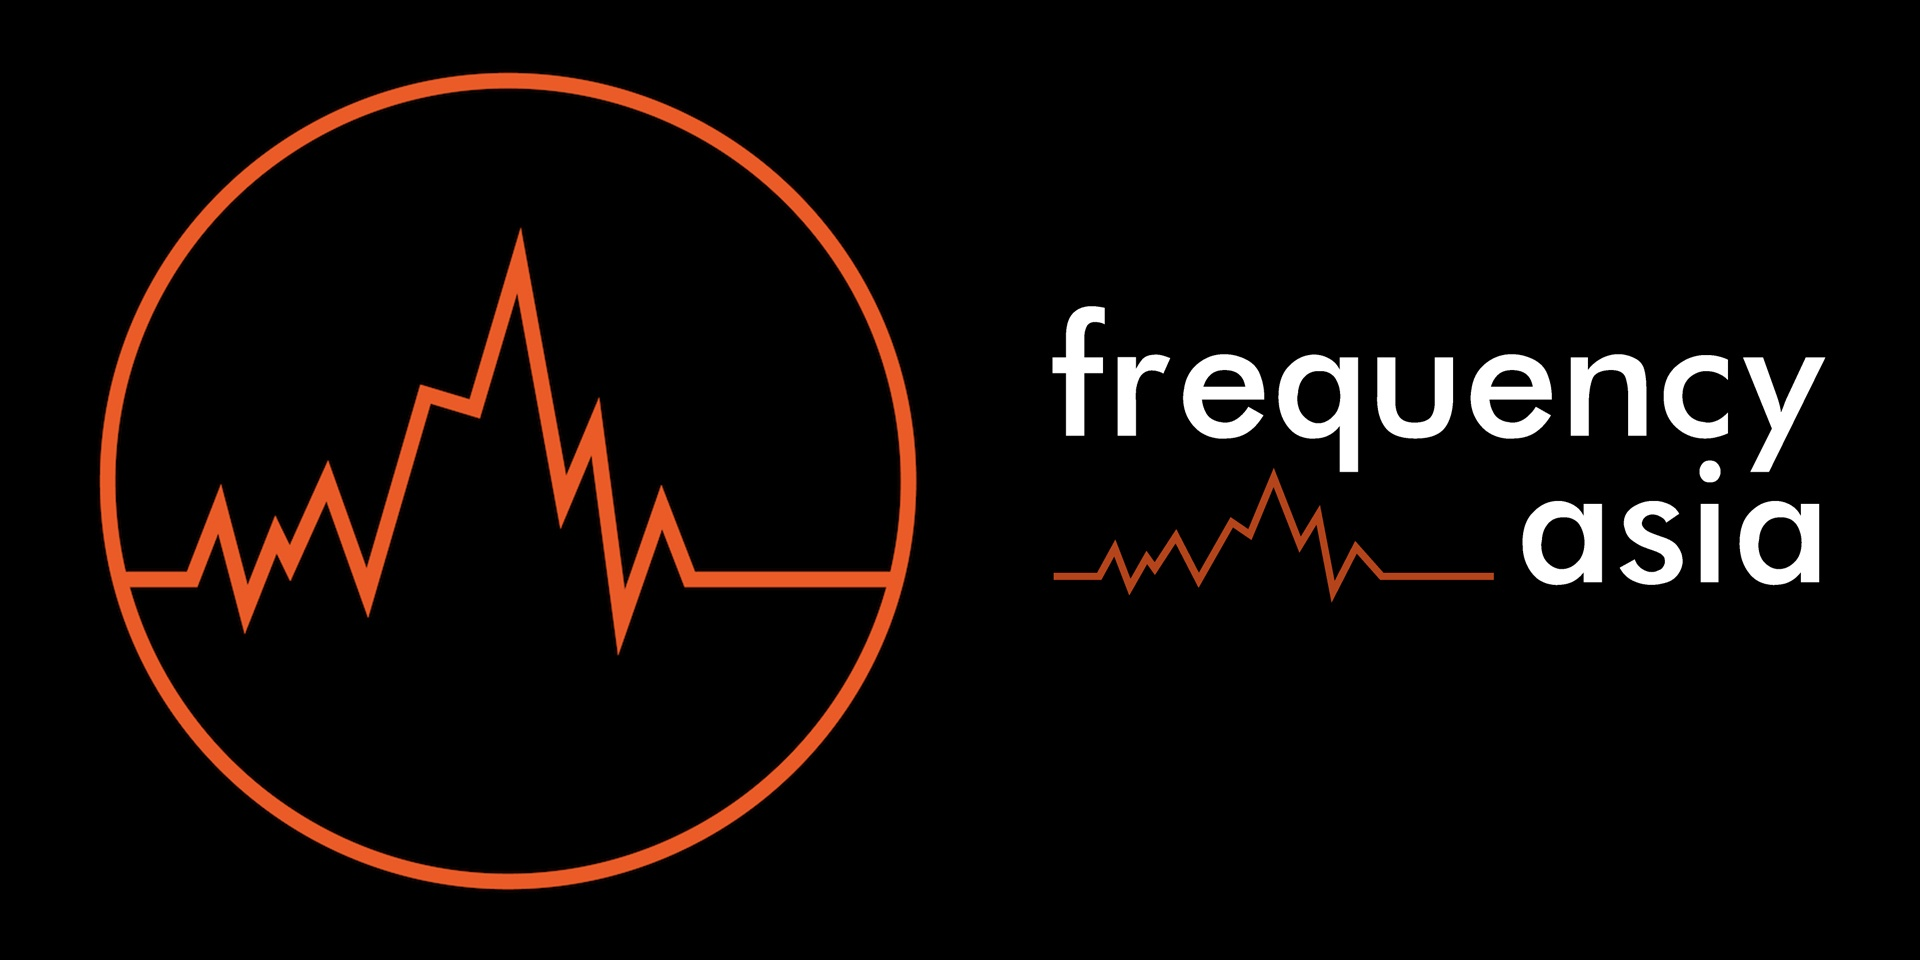 Frequency Asia is keeping tabs to bring you the best music in Asia